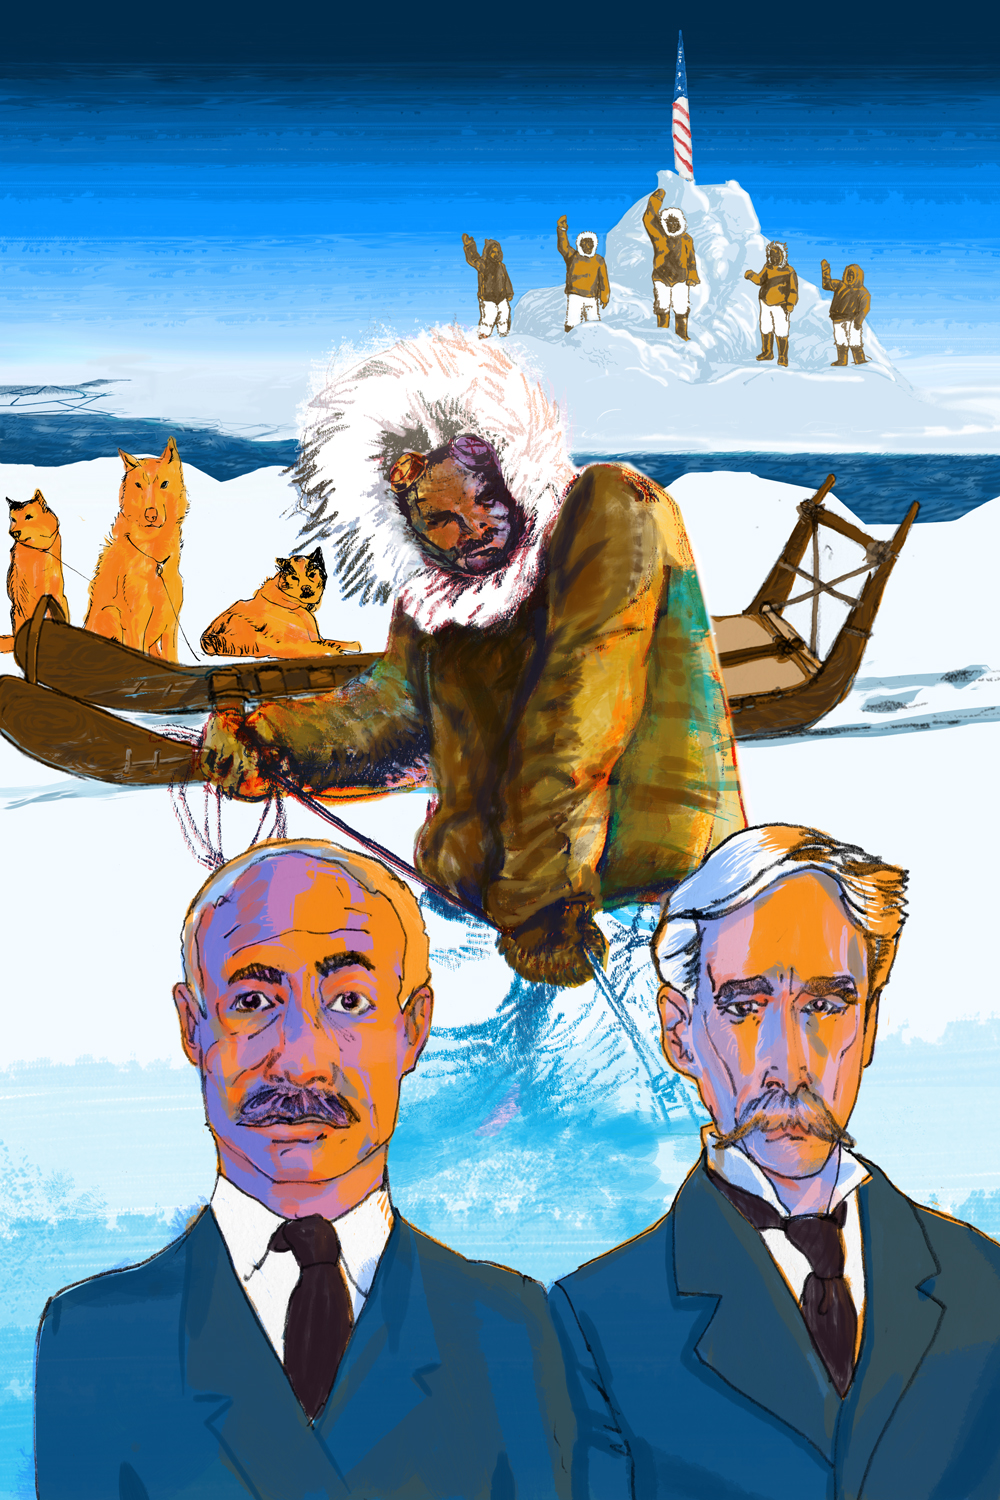 Matthew Henson, North Pole Explorer